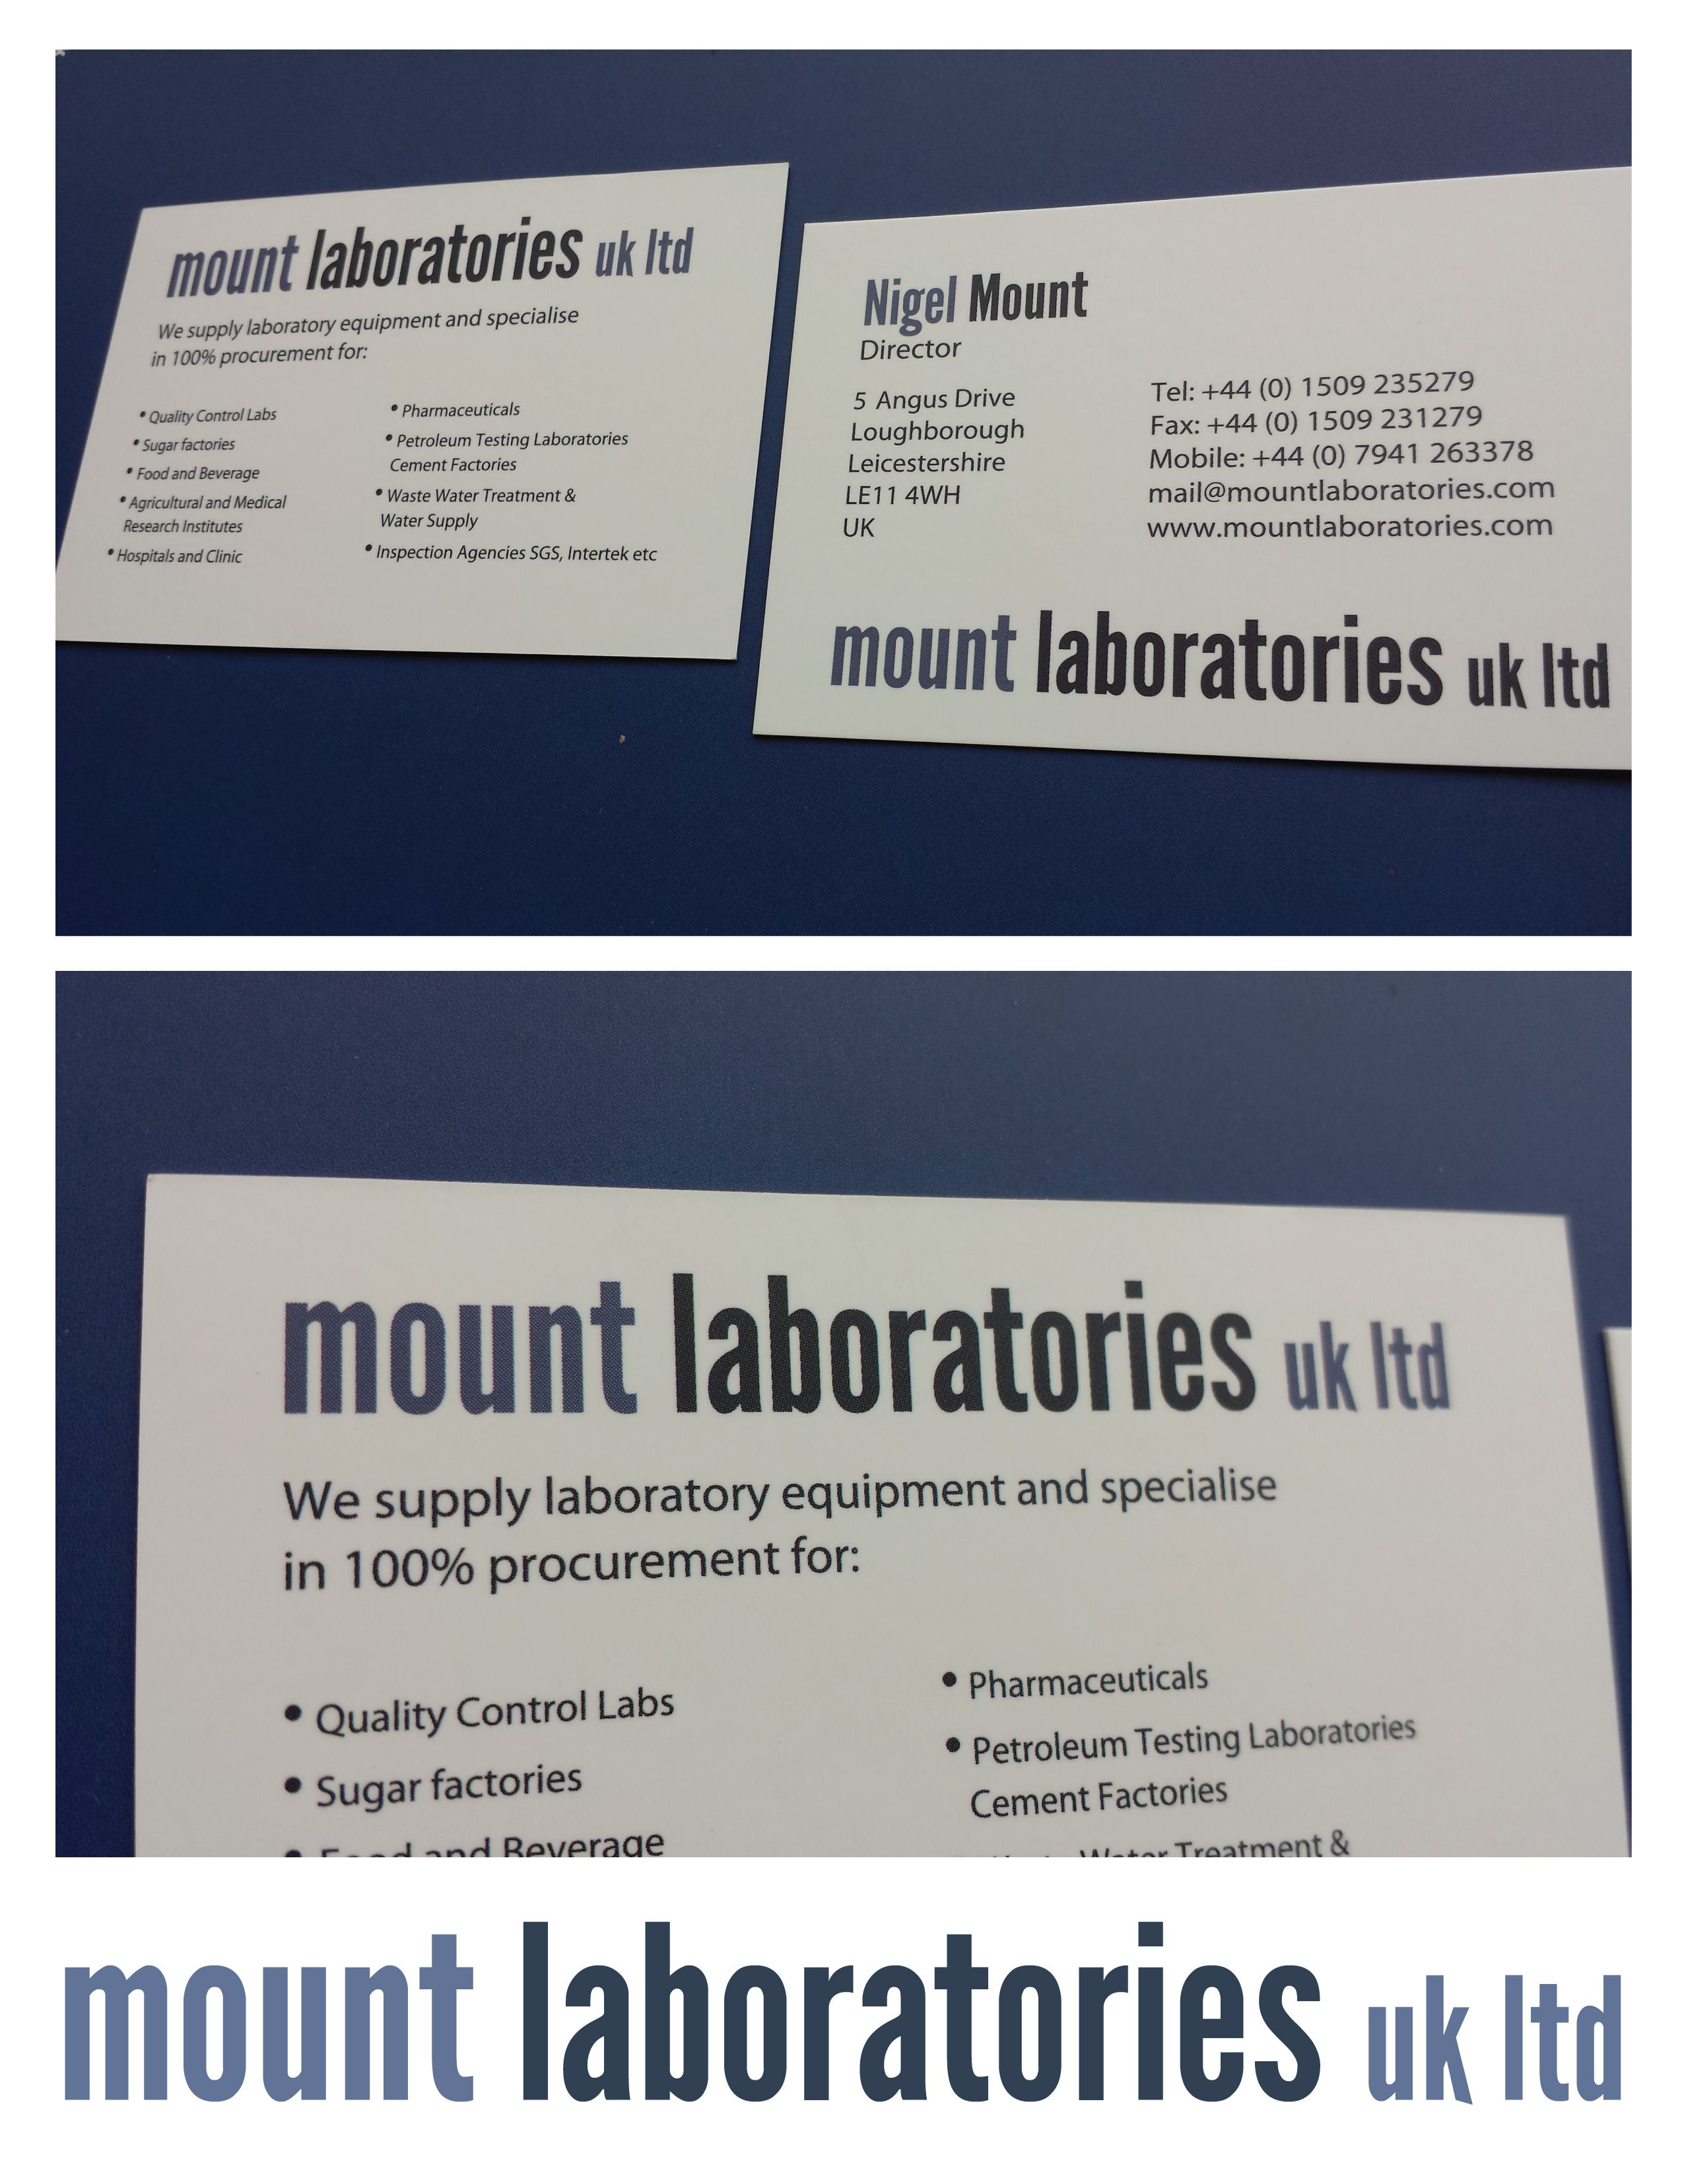 Business cards for Mount Laboratories.